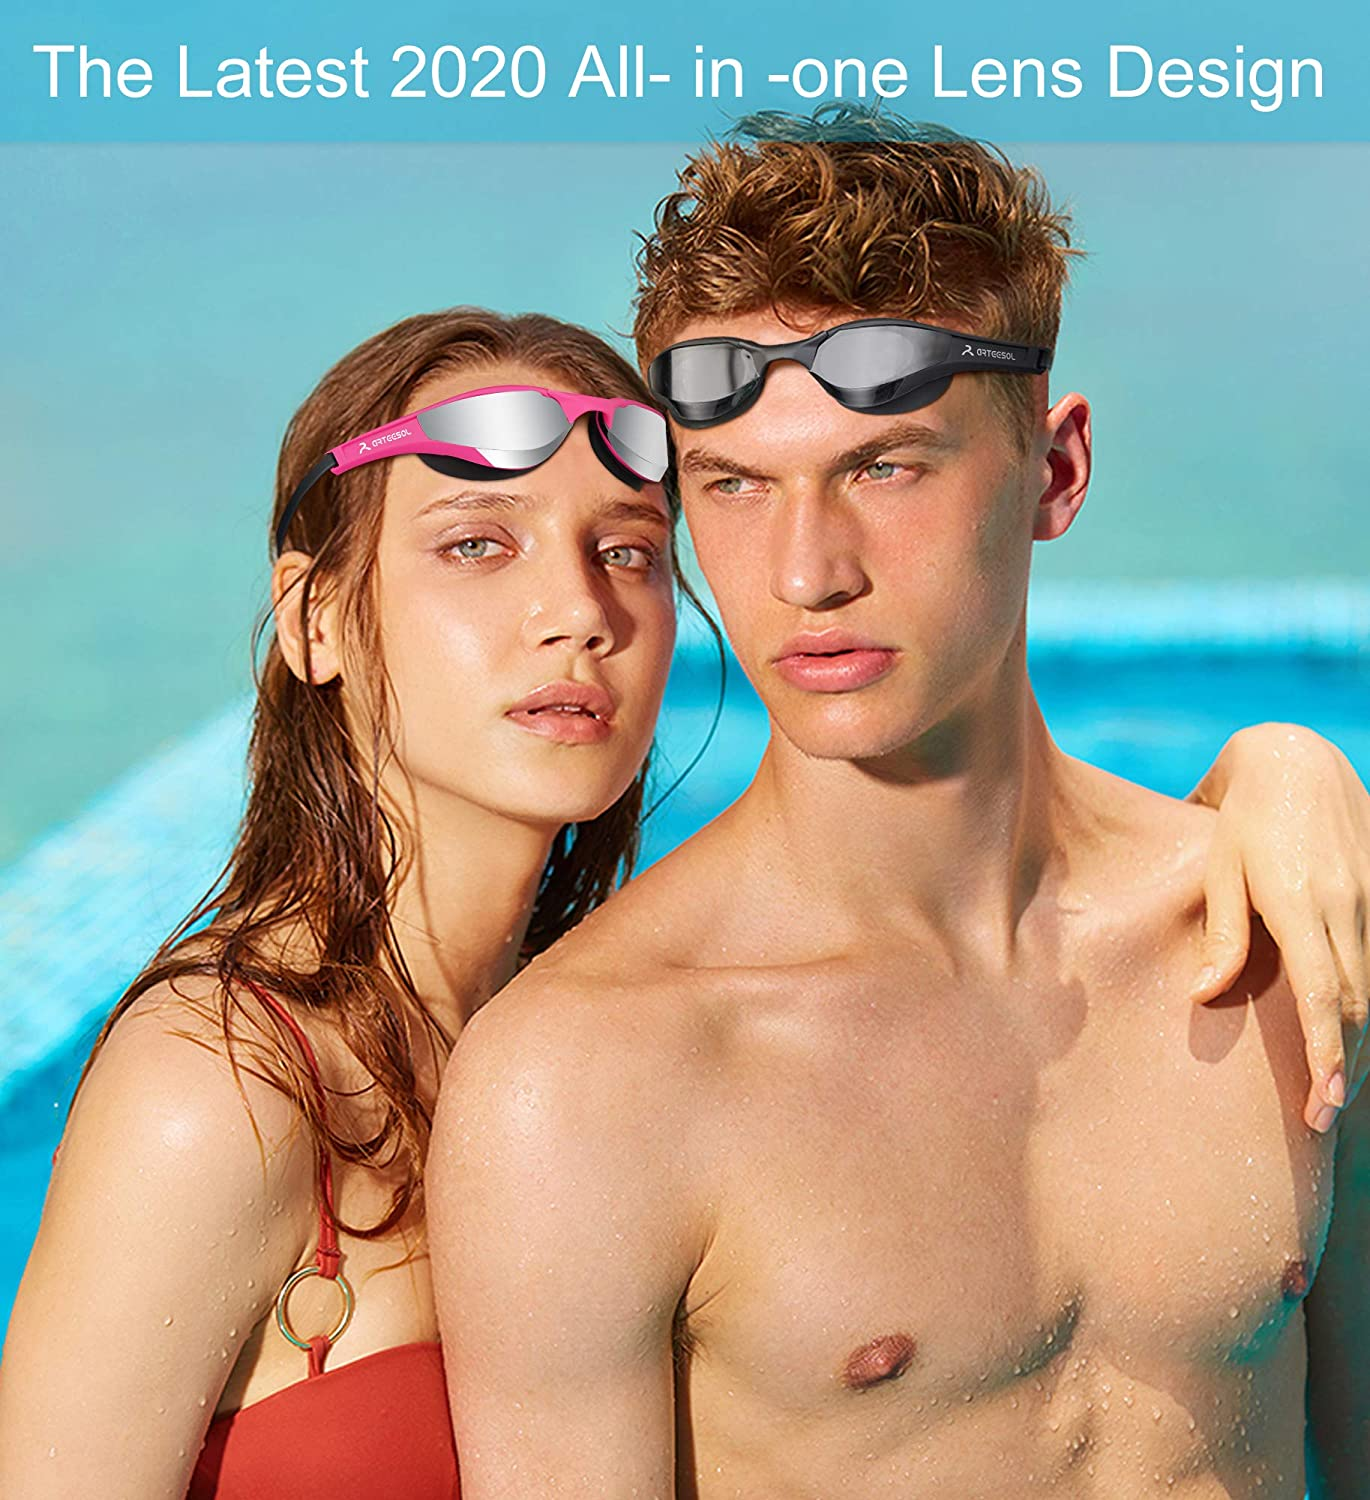 arteesol Swimming Goggles Adult Mirrored Swim Goggles Men No Leaking Anti Fog UV Protection Adjustable Elastic Strap with Protective Case Unisex for Men Women